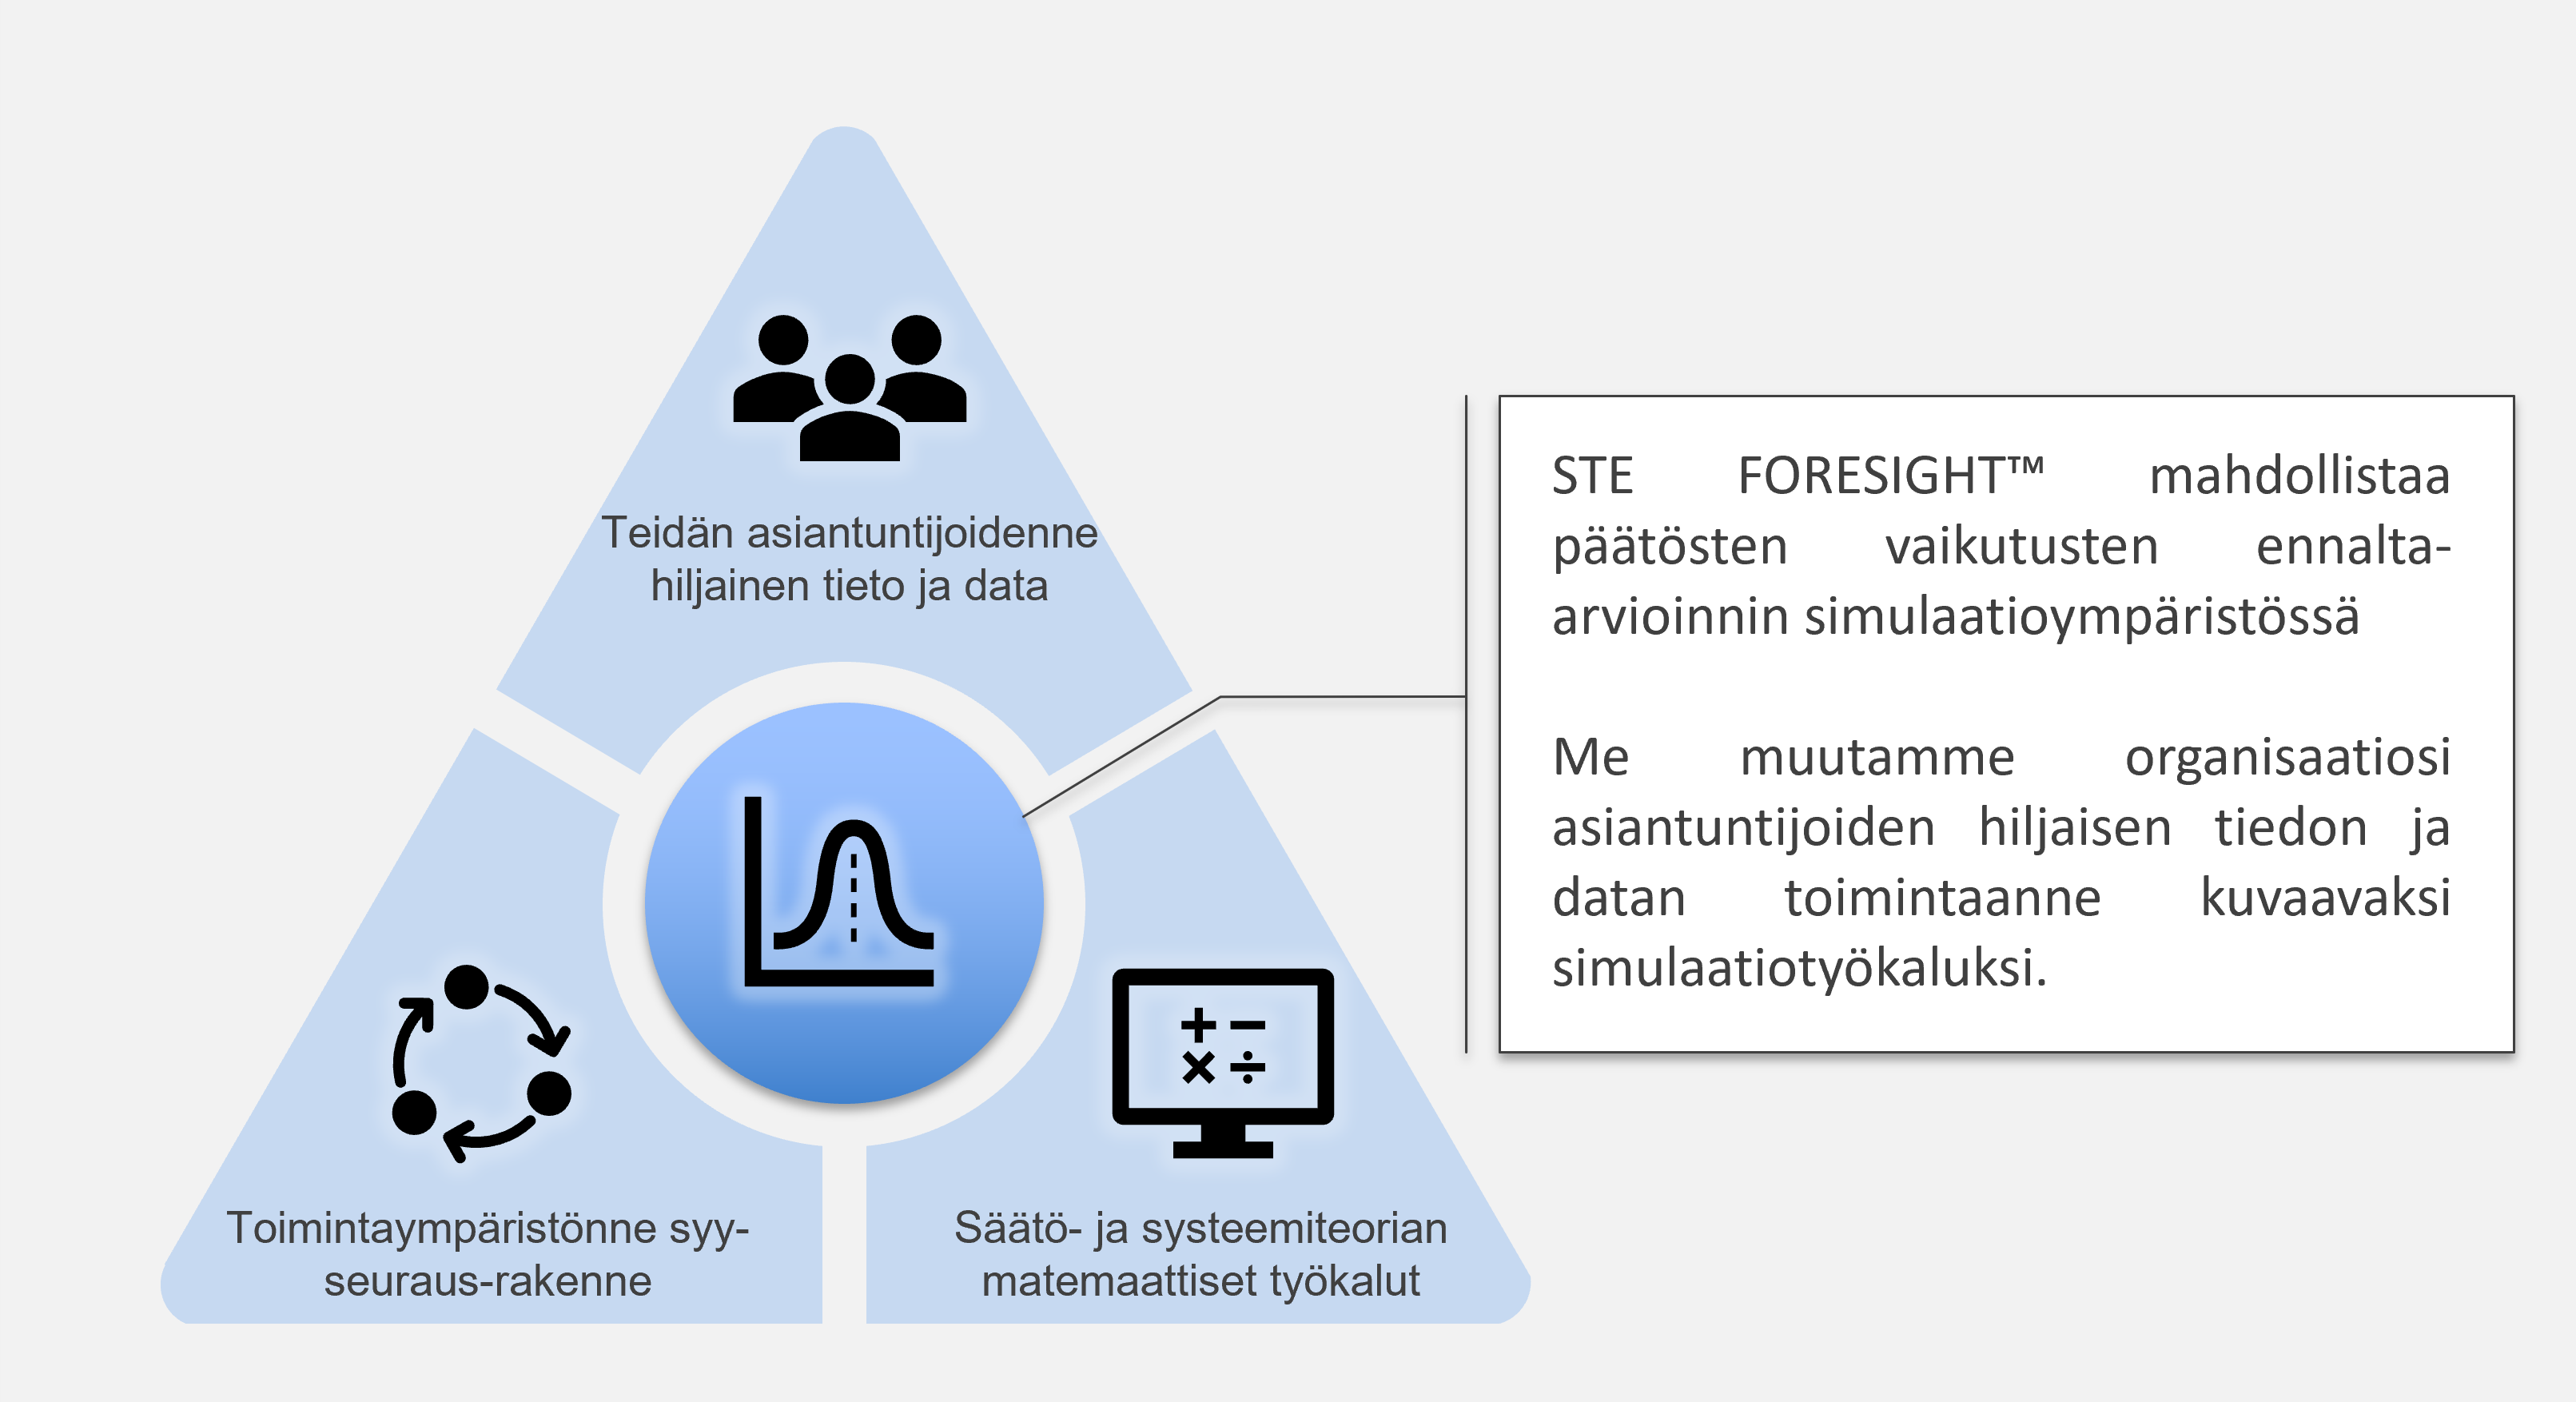 ste foresight overview